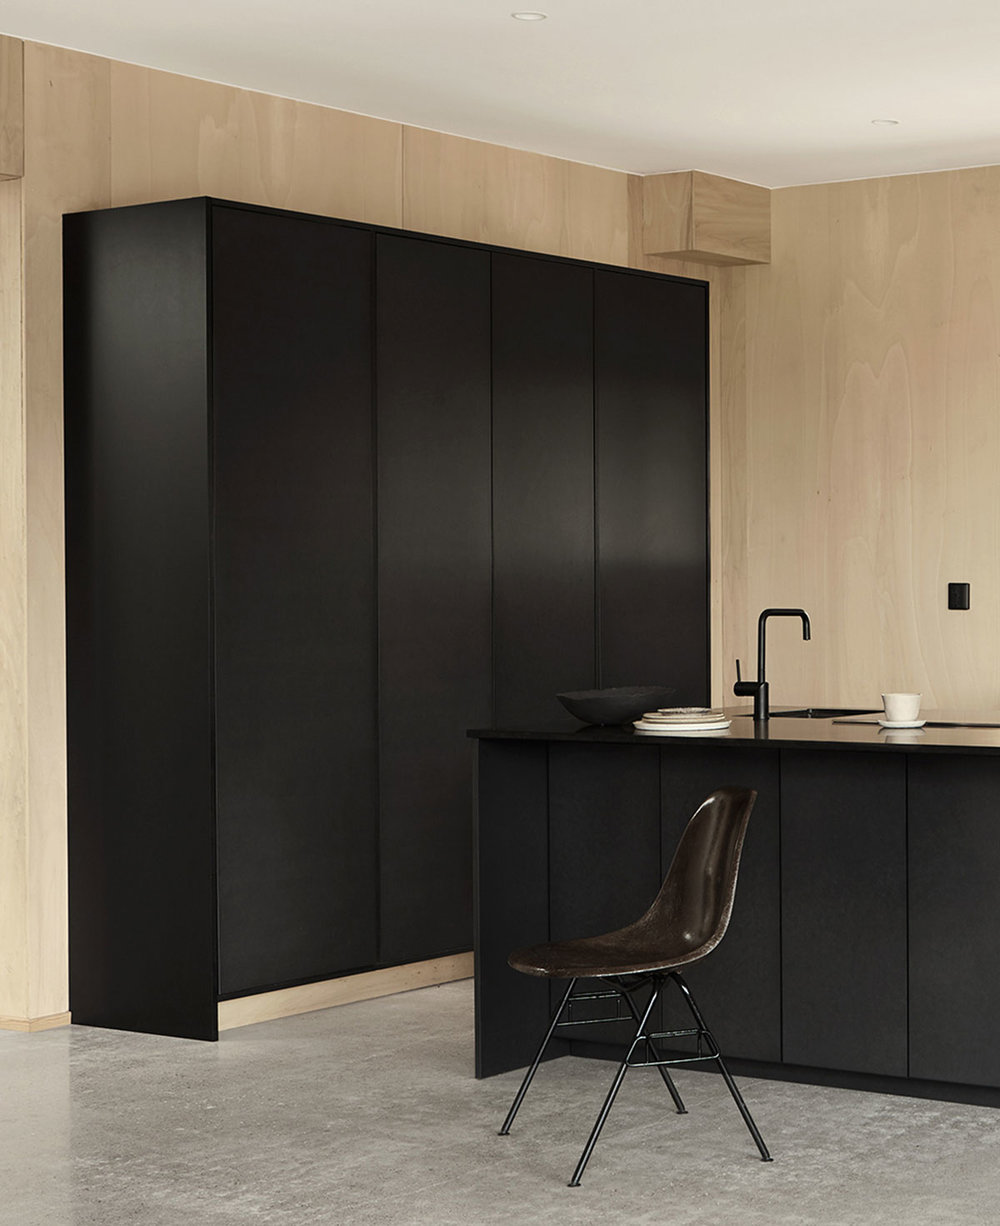 Bespoke modern valchromat kitchen design for Emma Bernhard